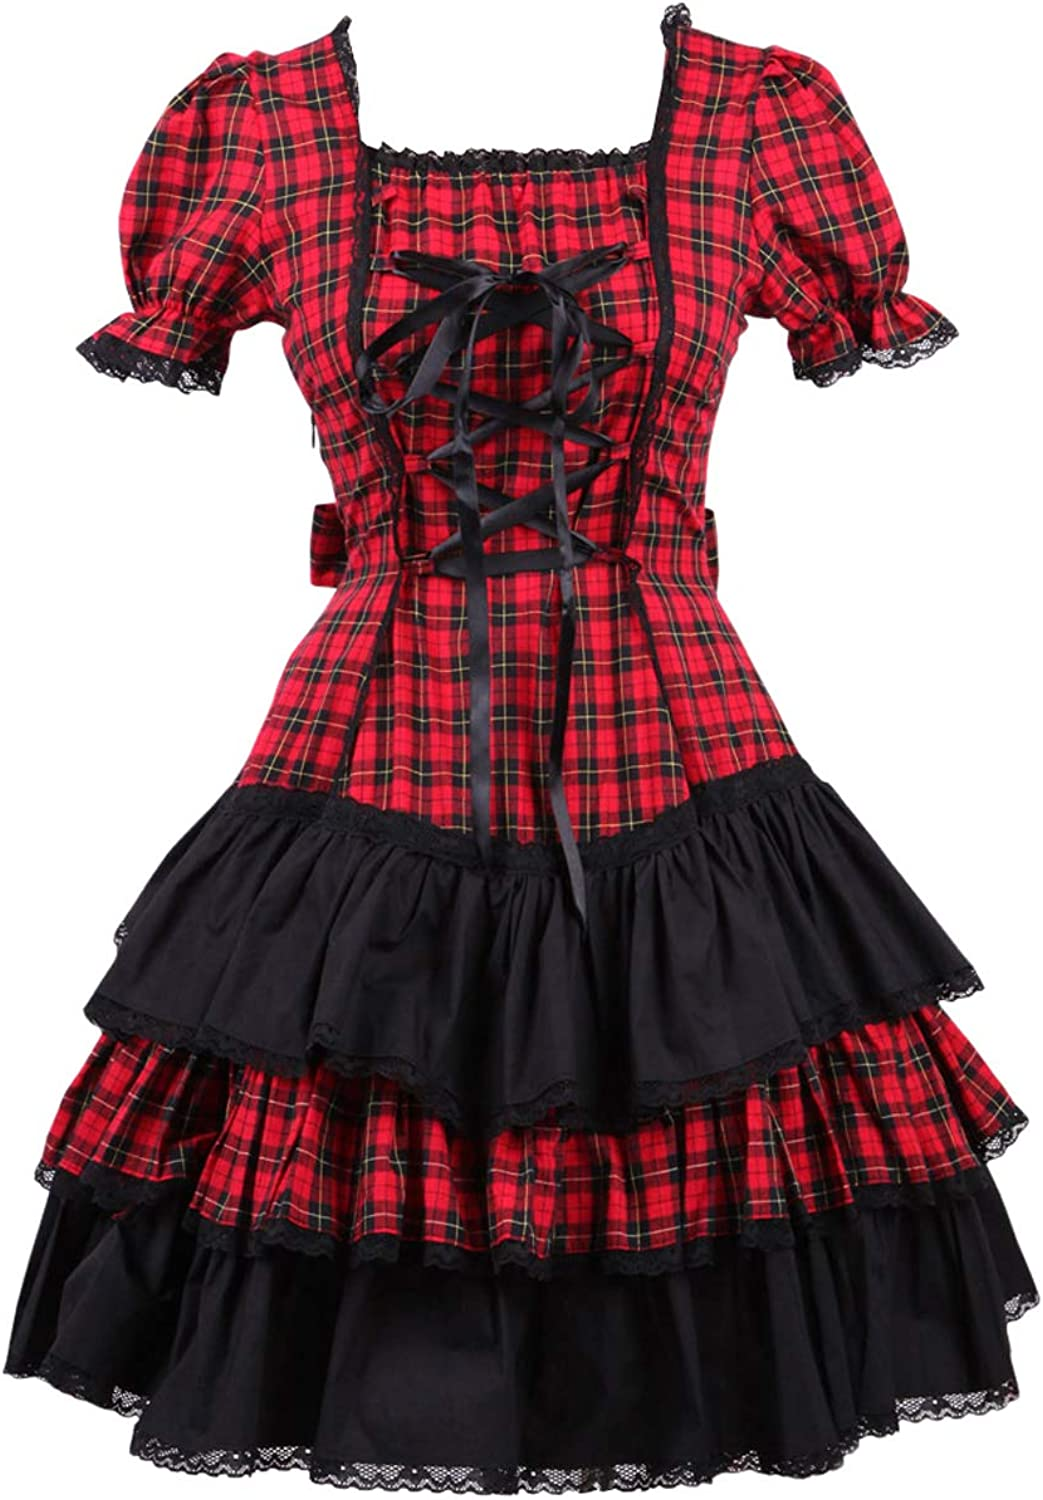 Antaina Red Plaid Cotton Ruffle Lace Gothic Student Lolita Cosplay Dress